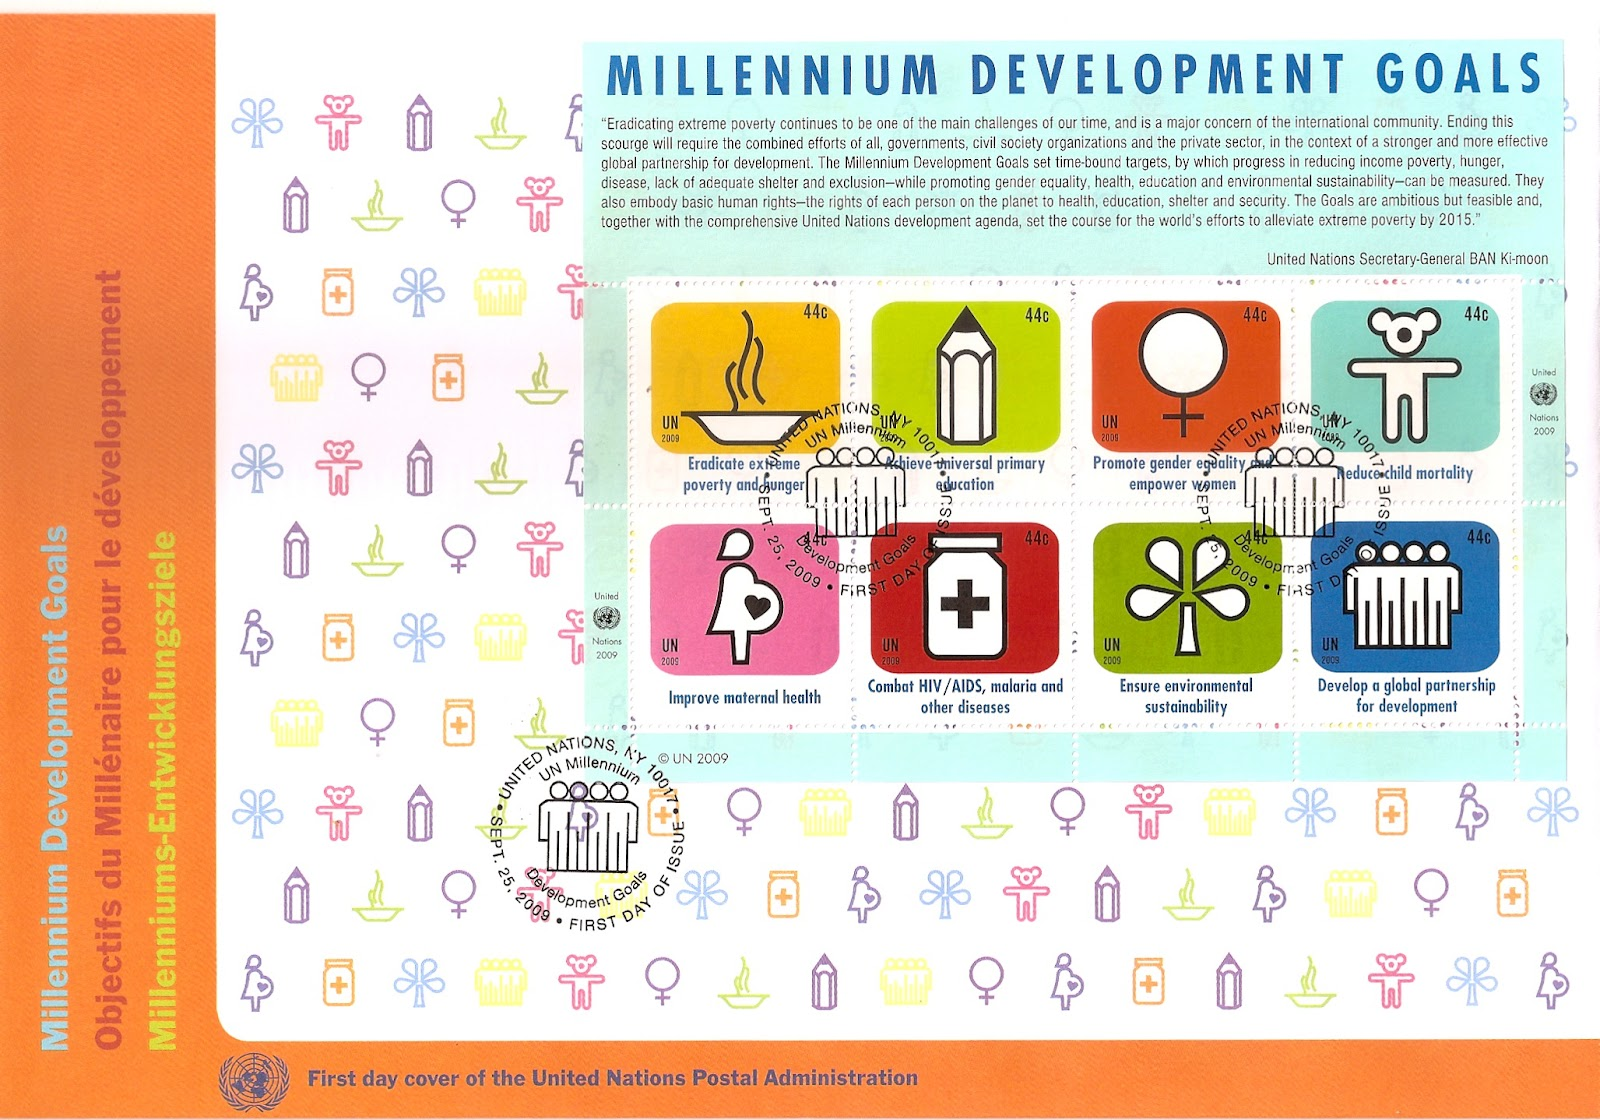 millennium goals The millennium declaration is a commitment signed by 189 world leaders in 2000 to work together to build a safer, more prosperous, and equitable world.